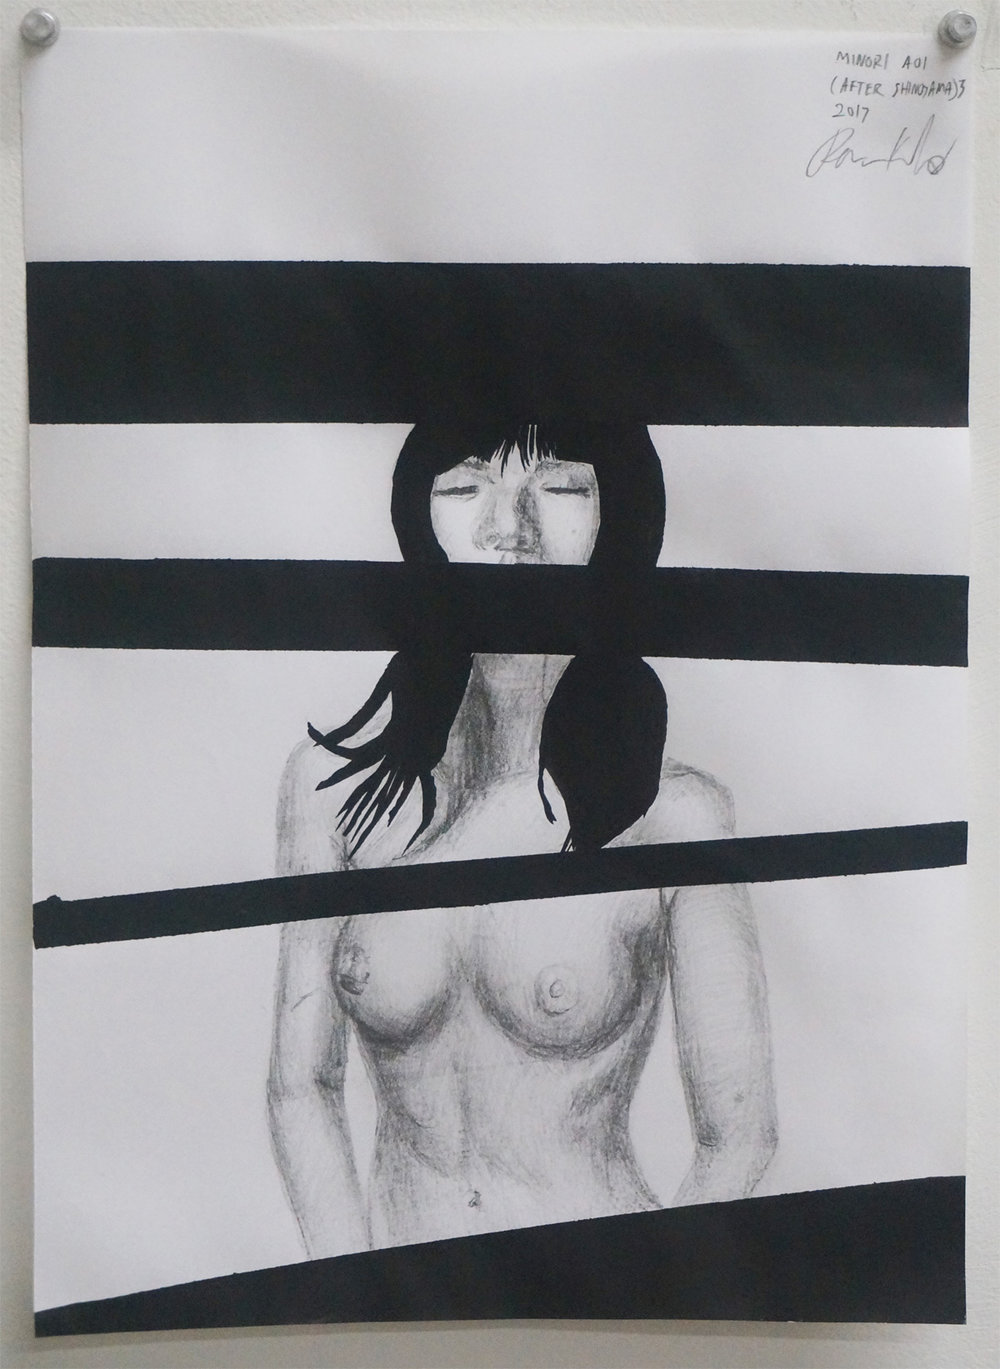 Minori Aoi: After Shinoyama 3 (Bars), 2017, graphite and gouache on vellum, 8 x 11 inches.